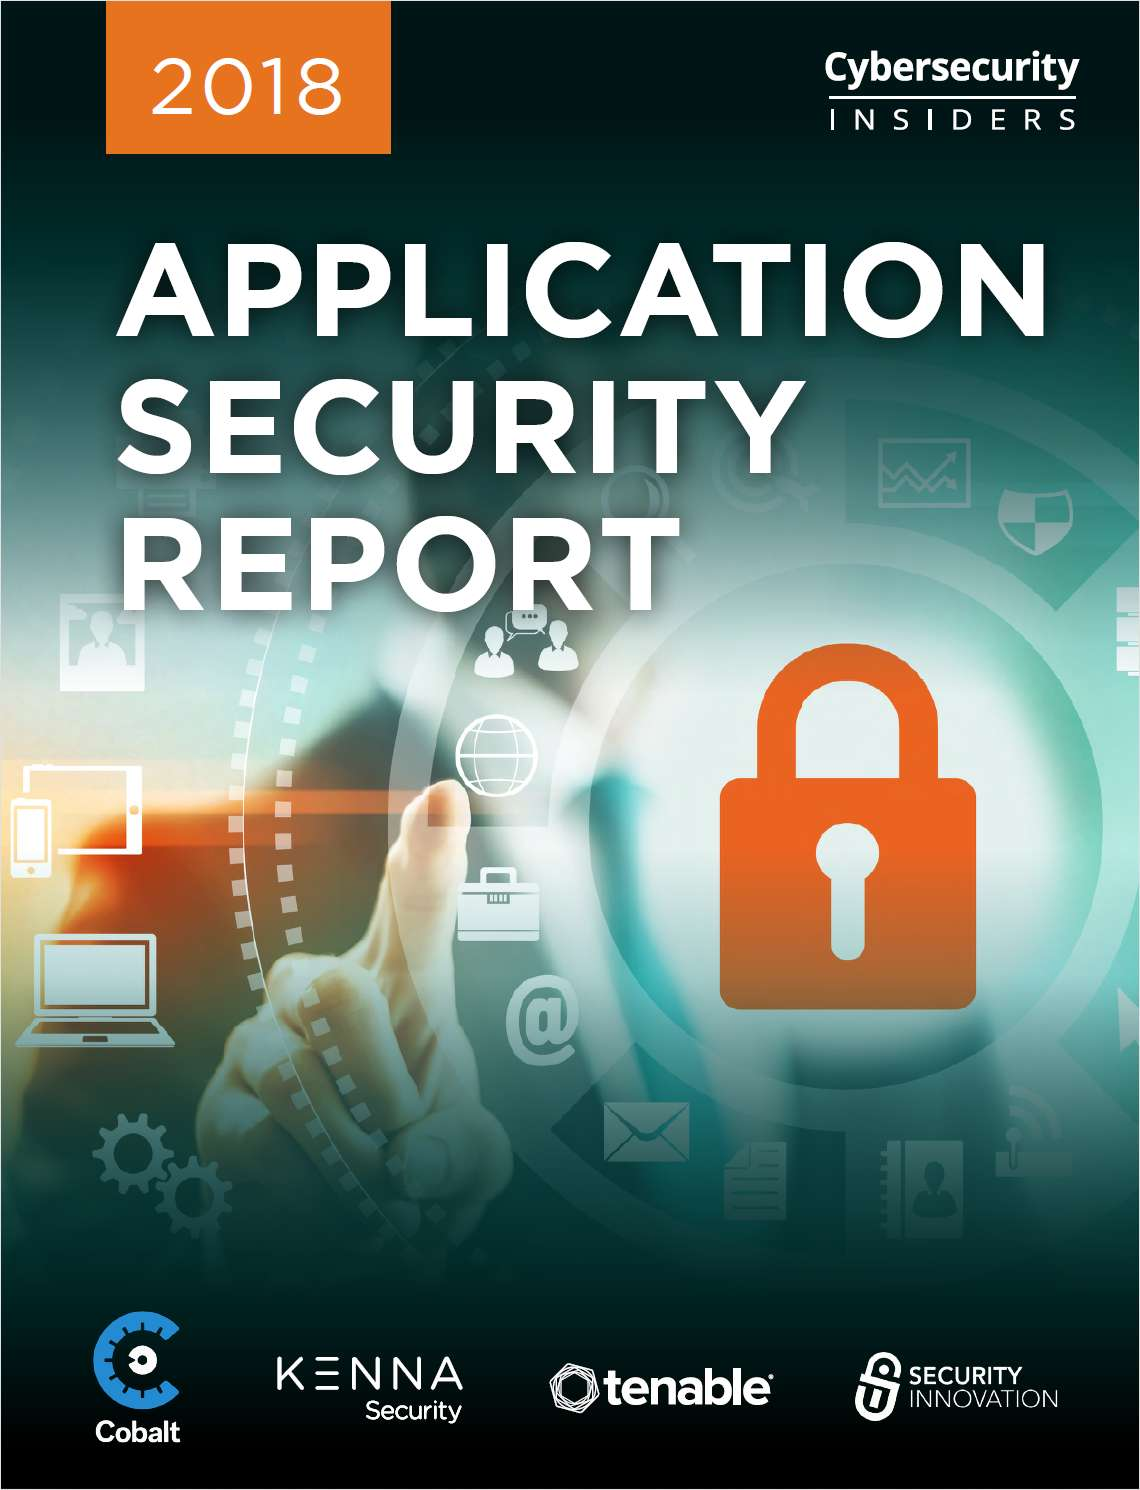 2018 Application Security Report